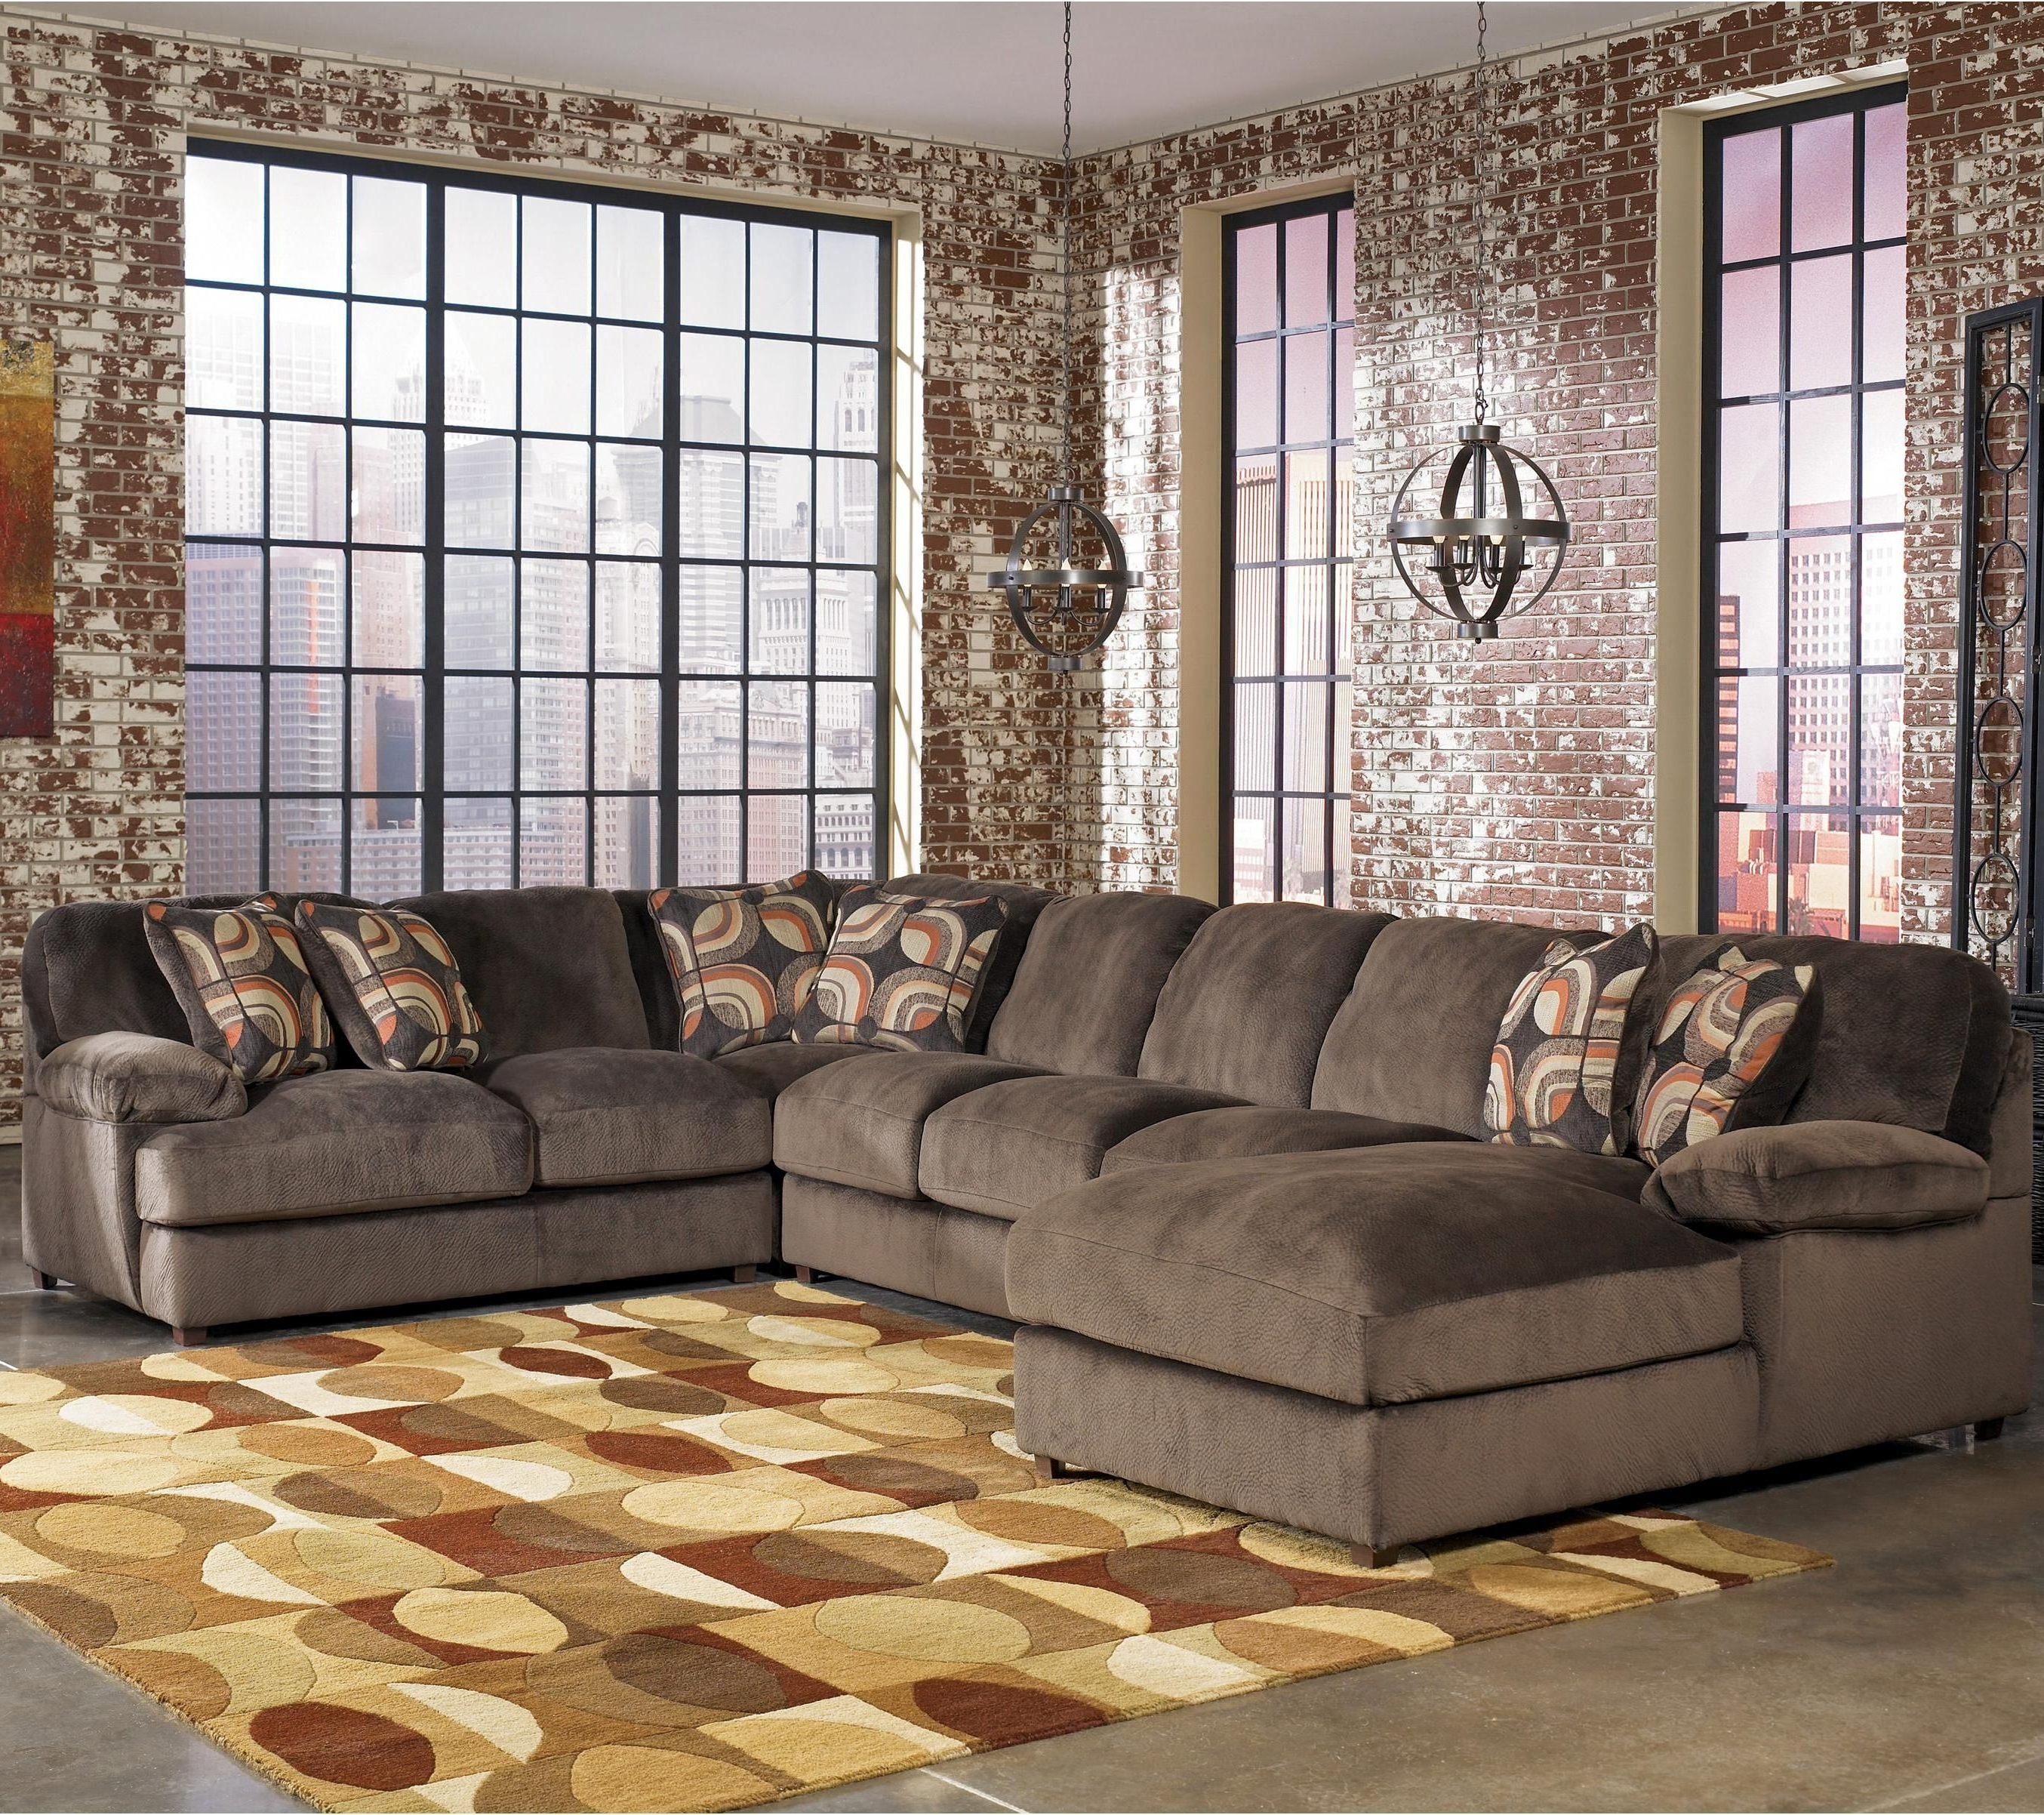 Flood Moultrie In Murfreesboro Tn Sectional Sofas (View 10 of 20)